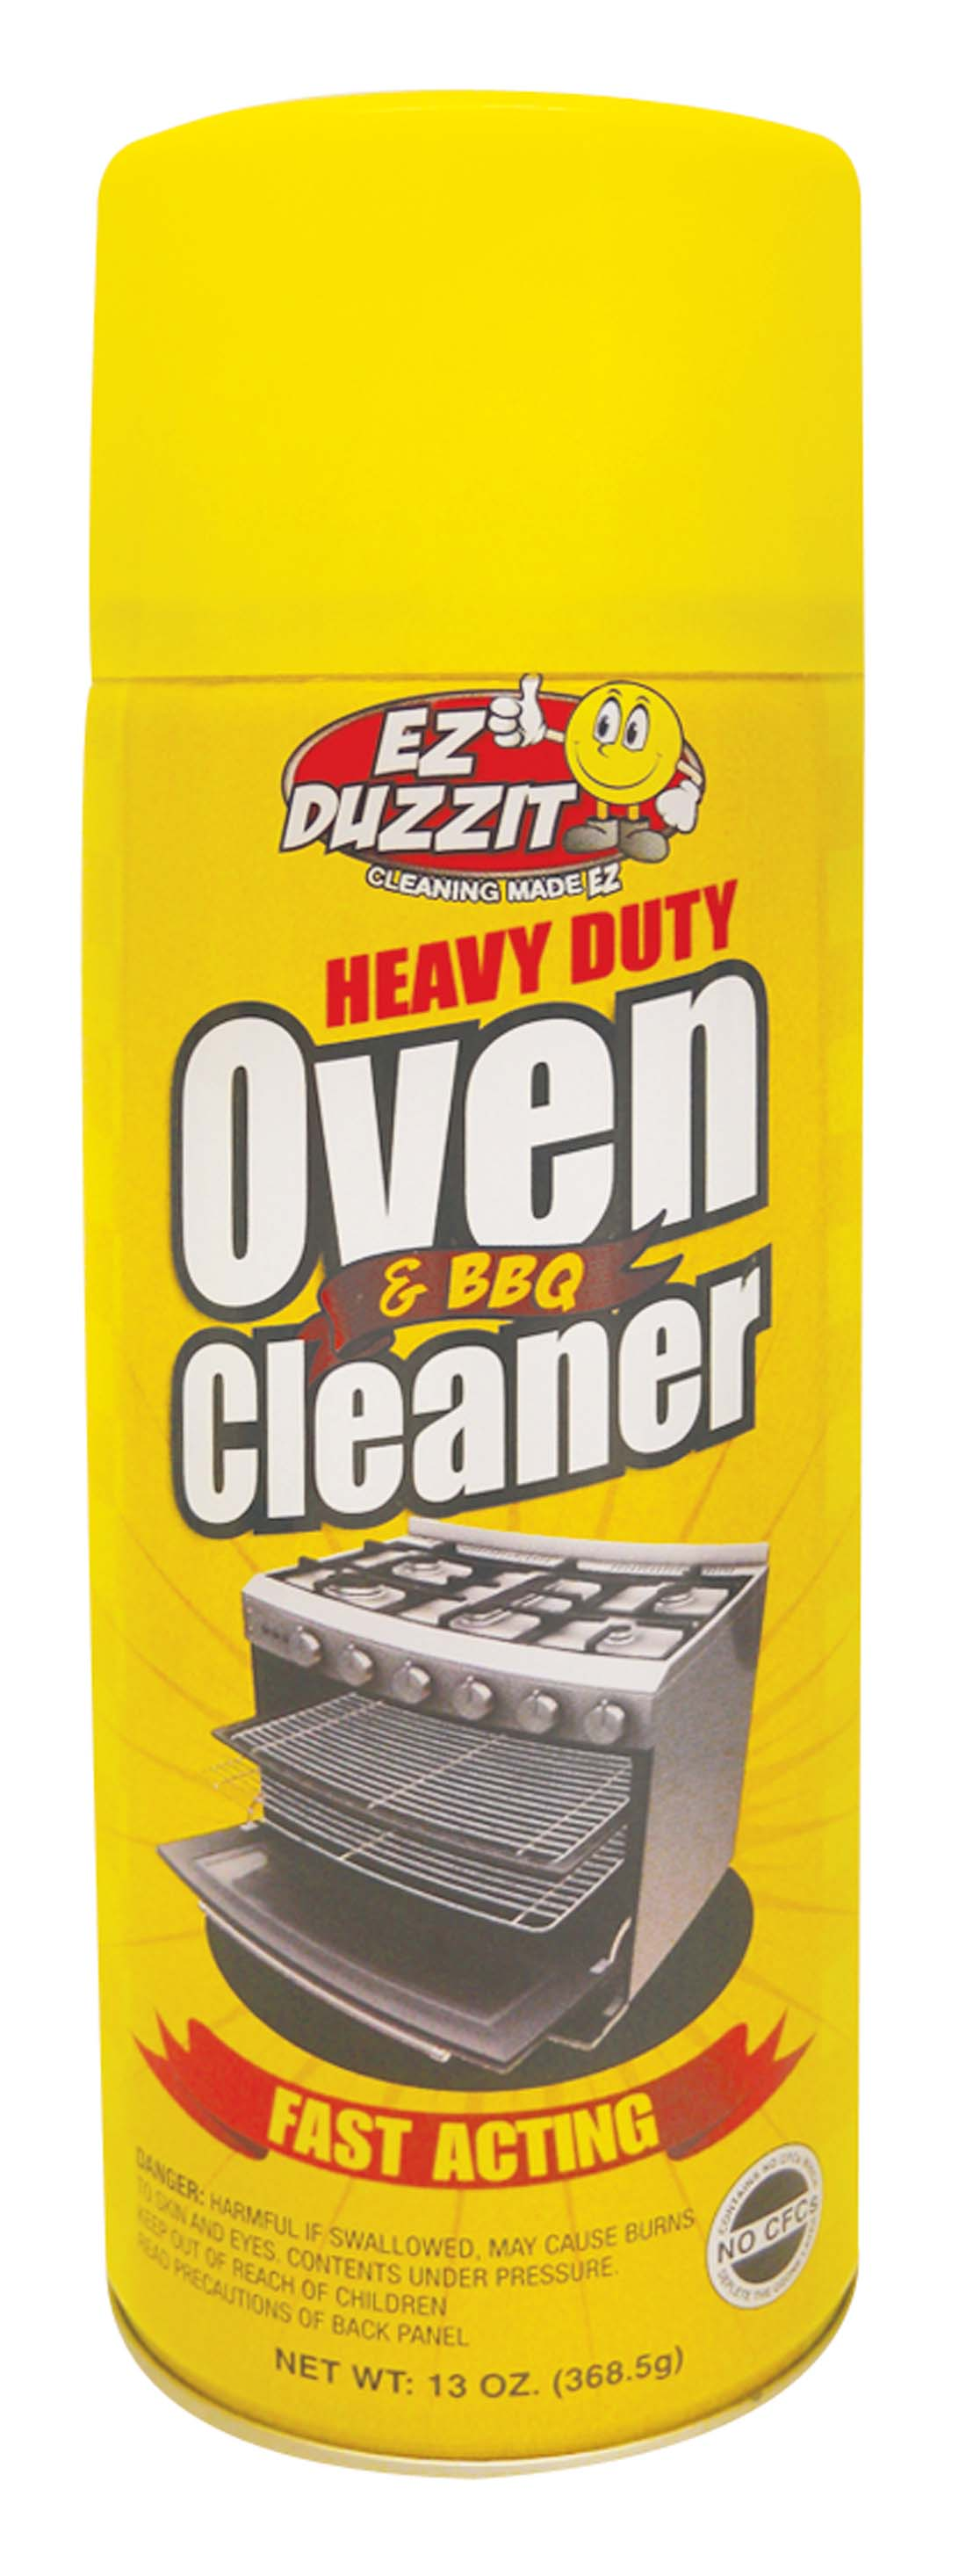 View SIMPLY FOR HOME OVEN & BBQ CLEANER 13 OZ HEAVY DUTY EXPIRATION DATE 5/14/2016